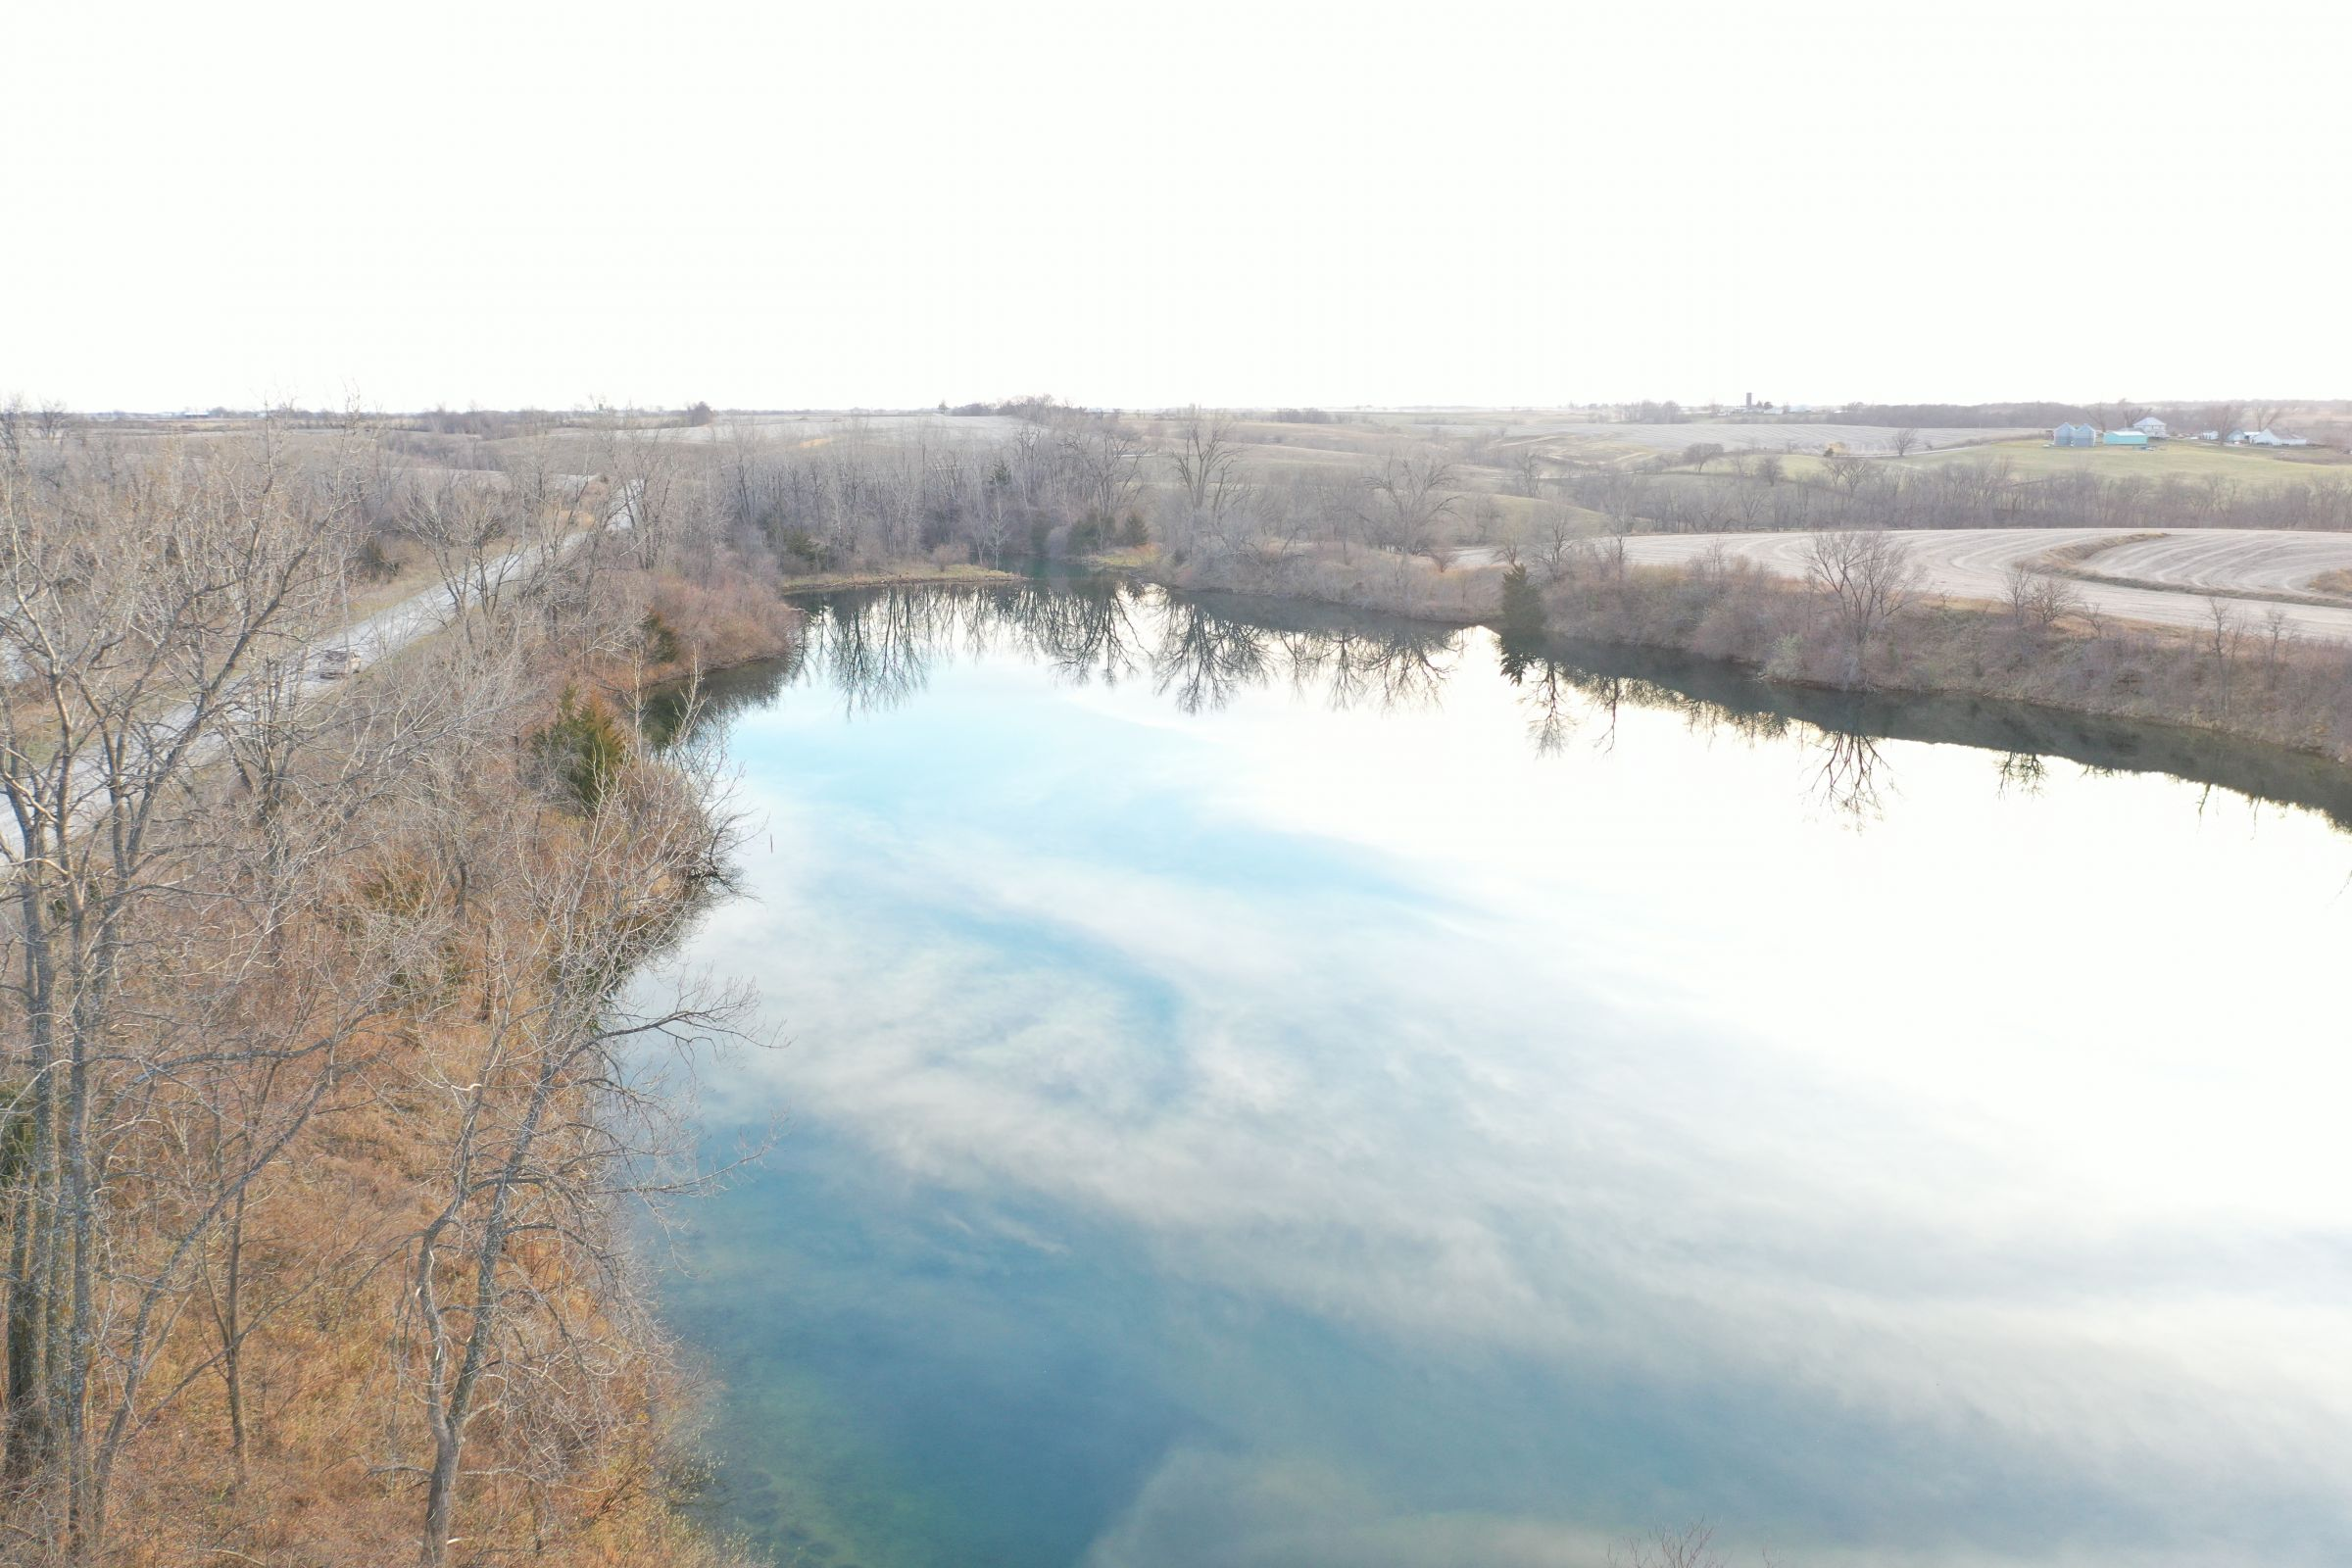 land-marion-county-iowa-60-acres-listing-number-15303-7-2020-12-15-222448.jpg